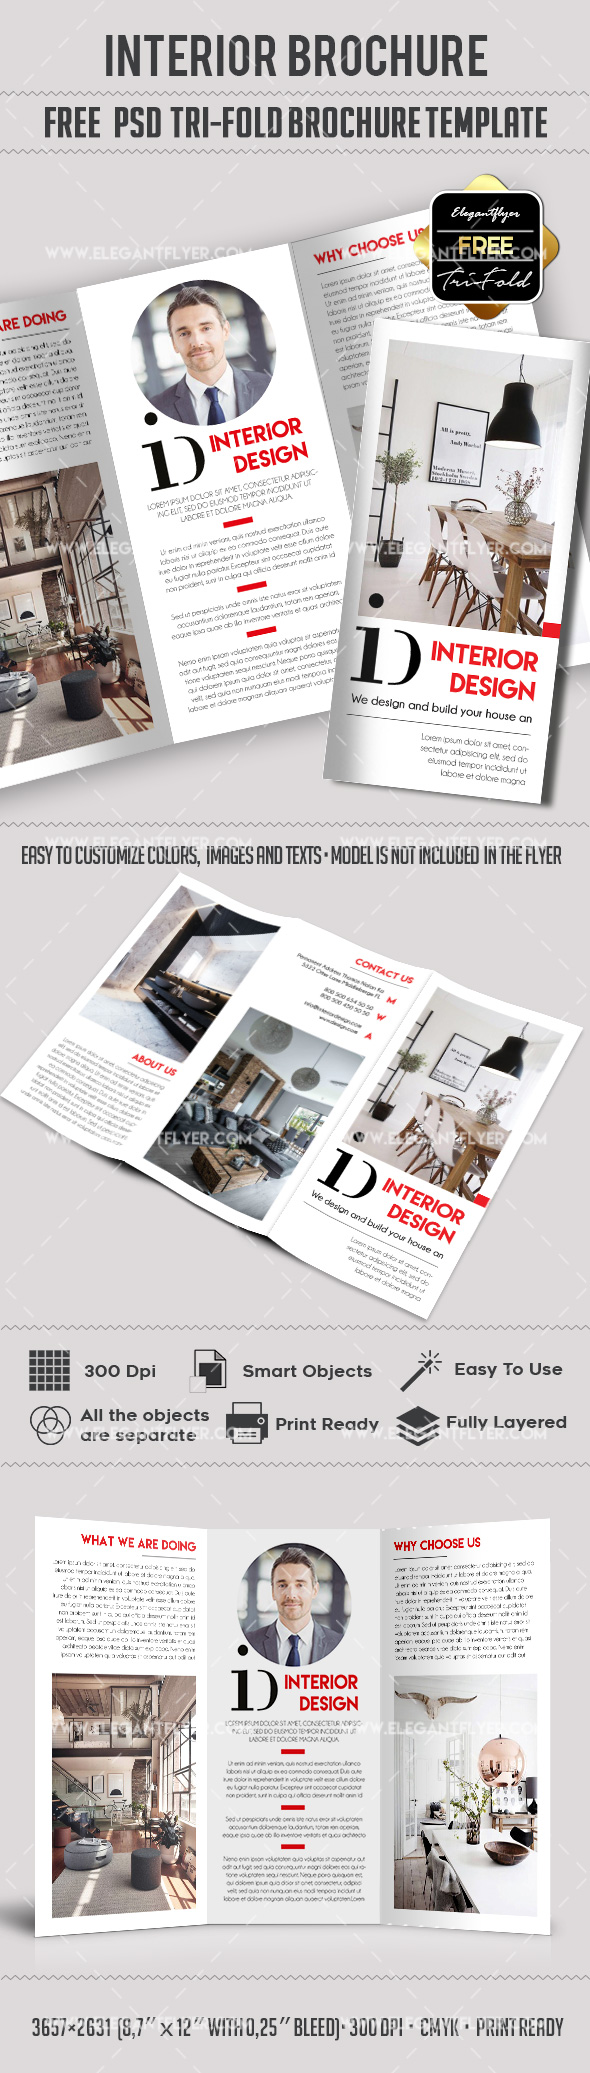 Interior design free tri fold brochure by elegantflyer for Brochure design psd templates